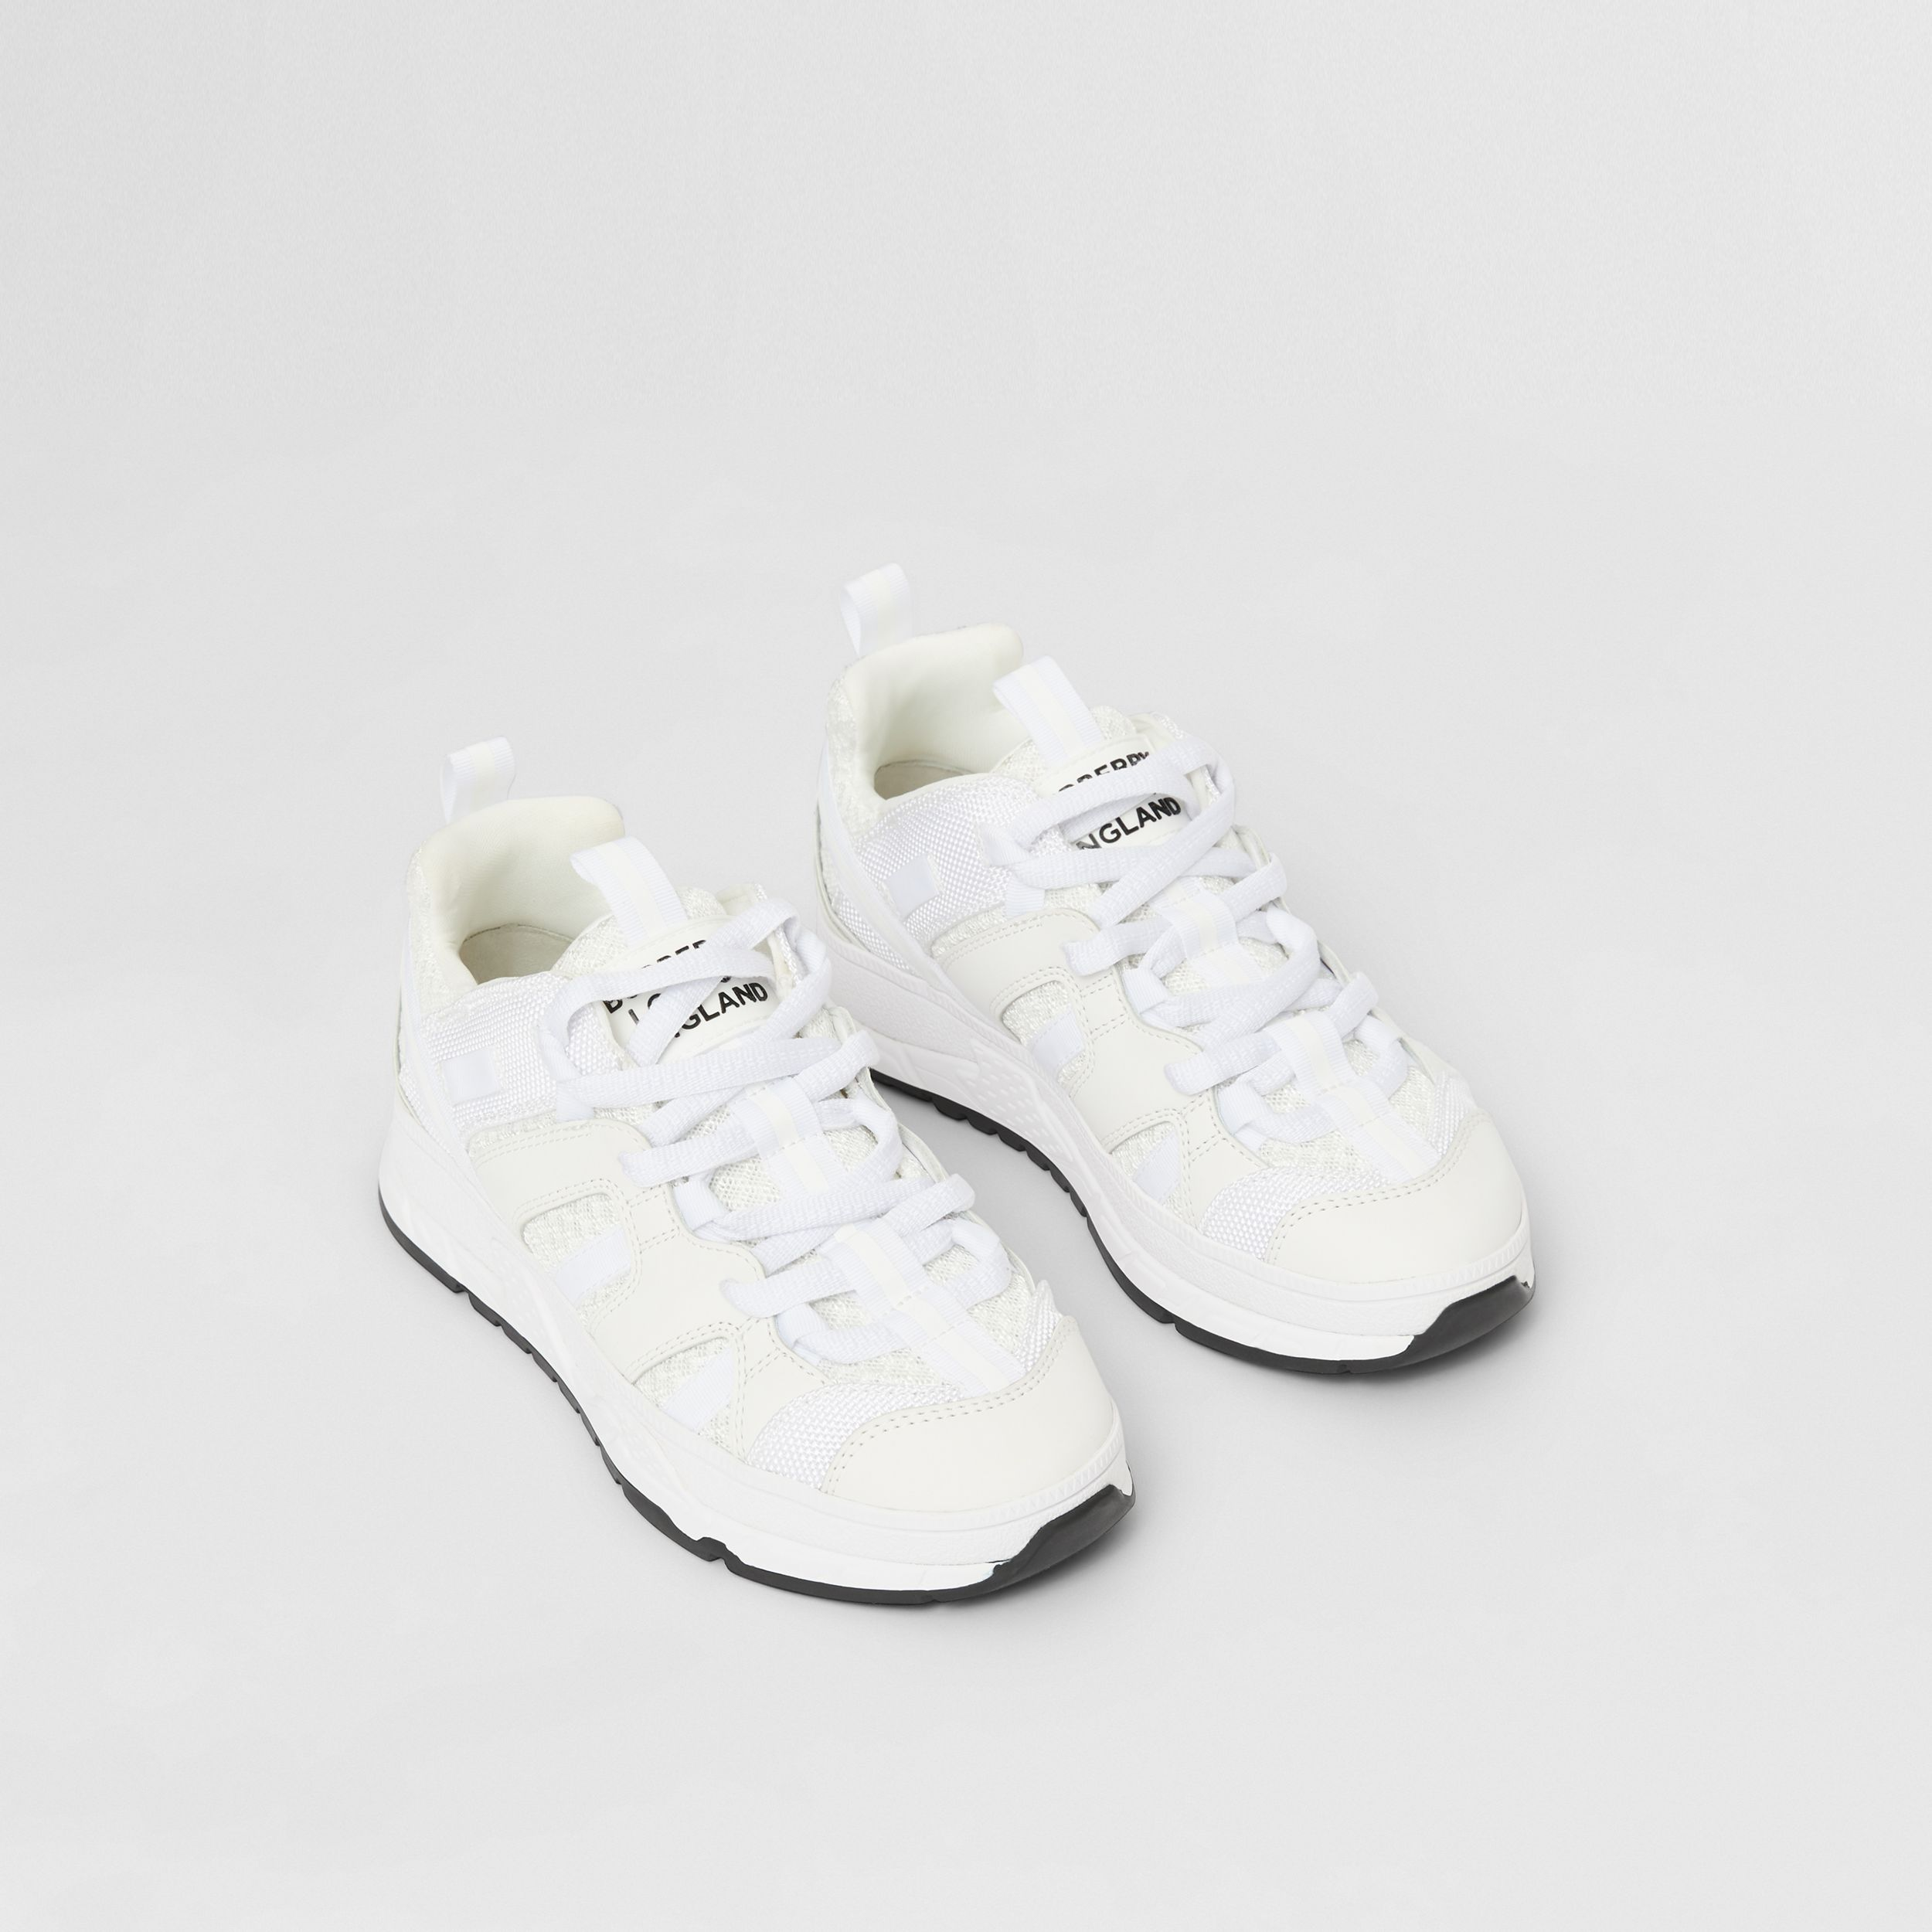 Mesh and Nubuck Union Sneakers in Optic White - Children | Burberry - 1